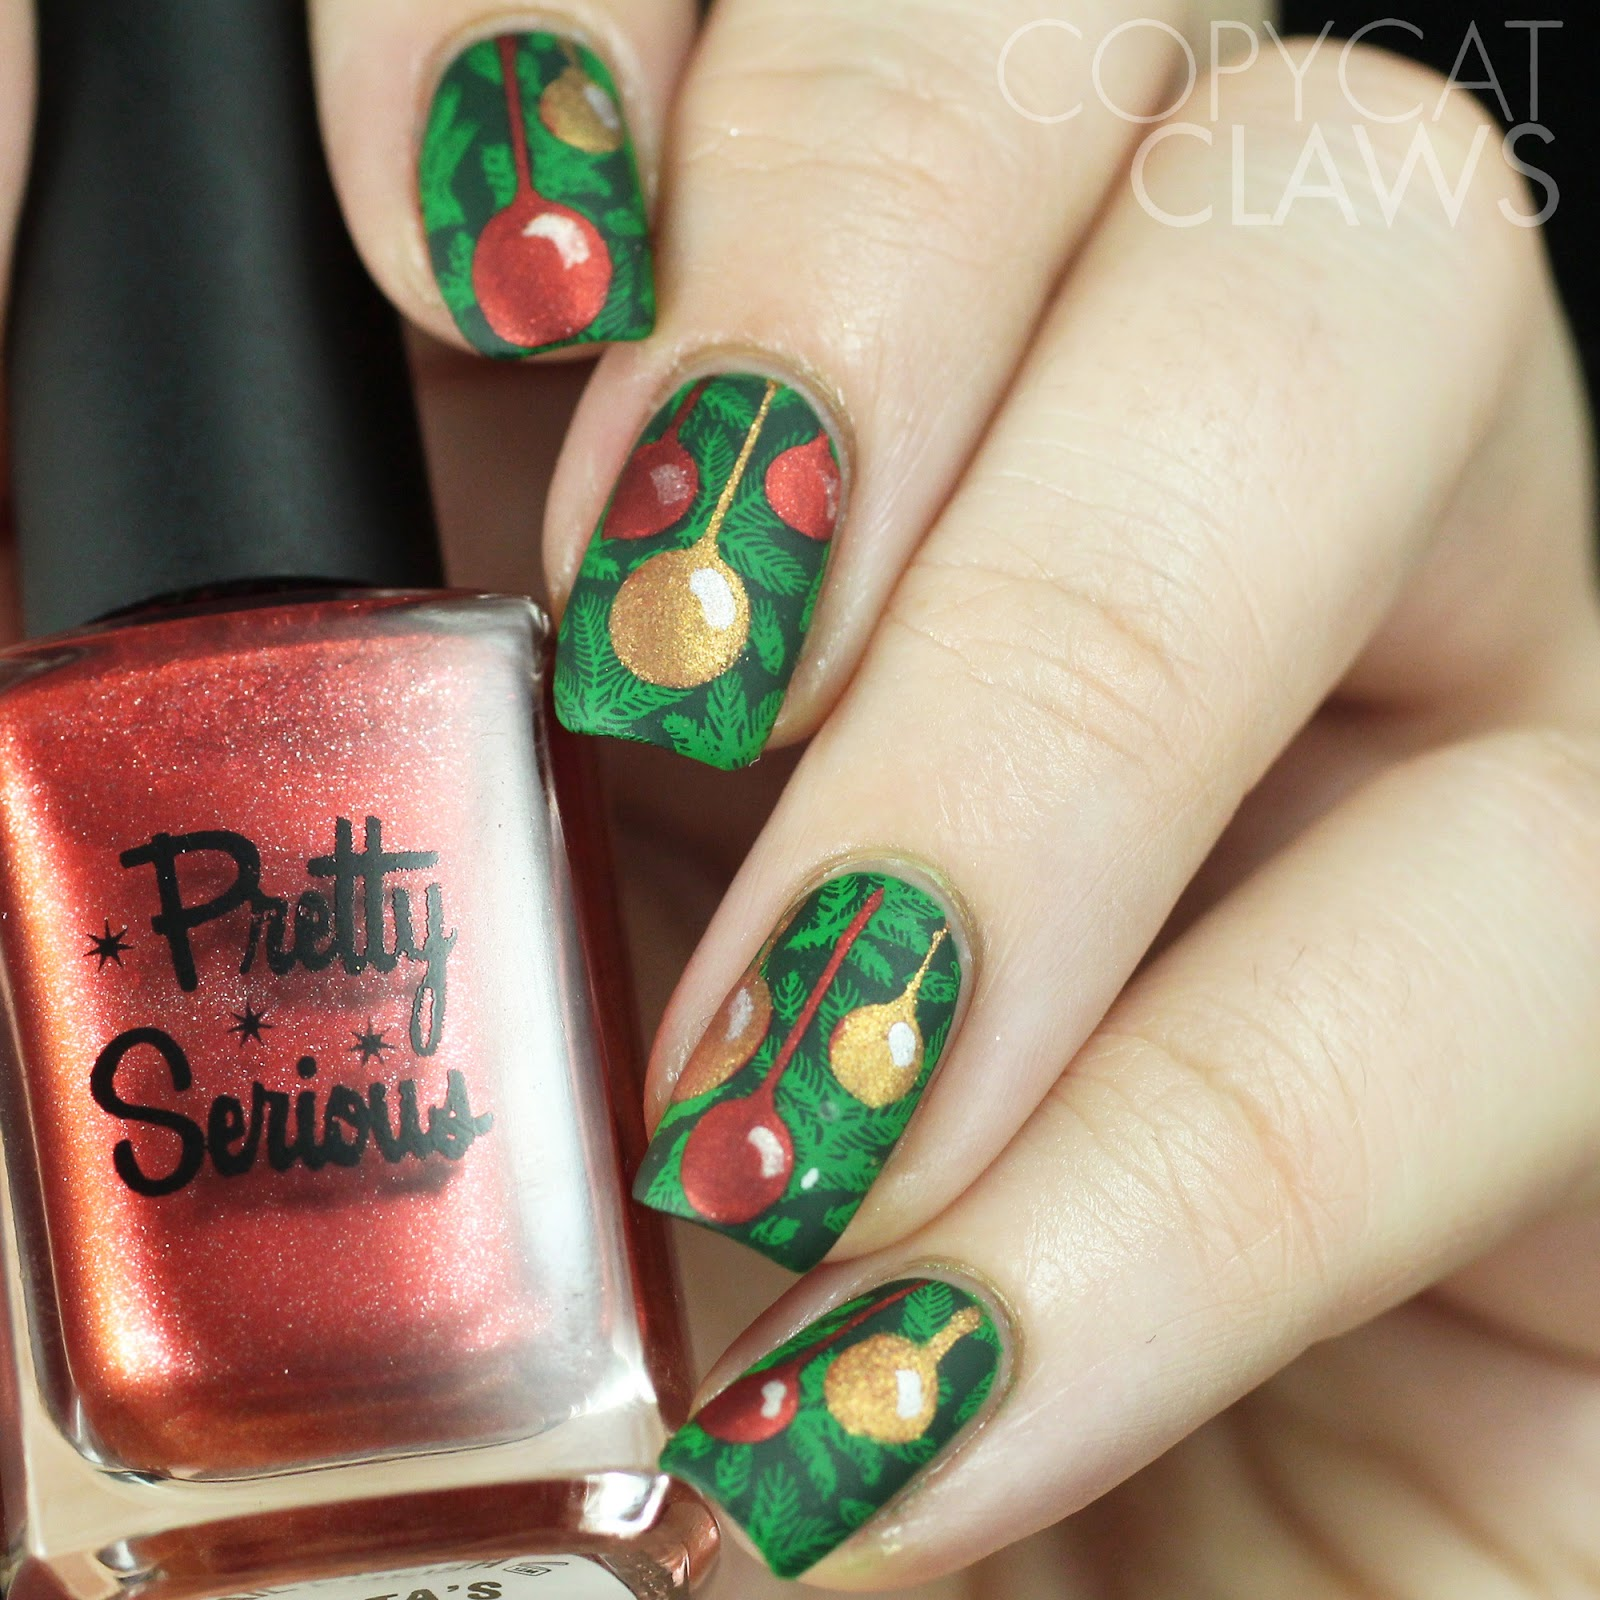 Copycat Claws: 26 Great Nail Art Ideas - Christmas Childhood